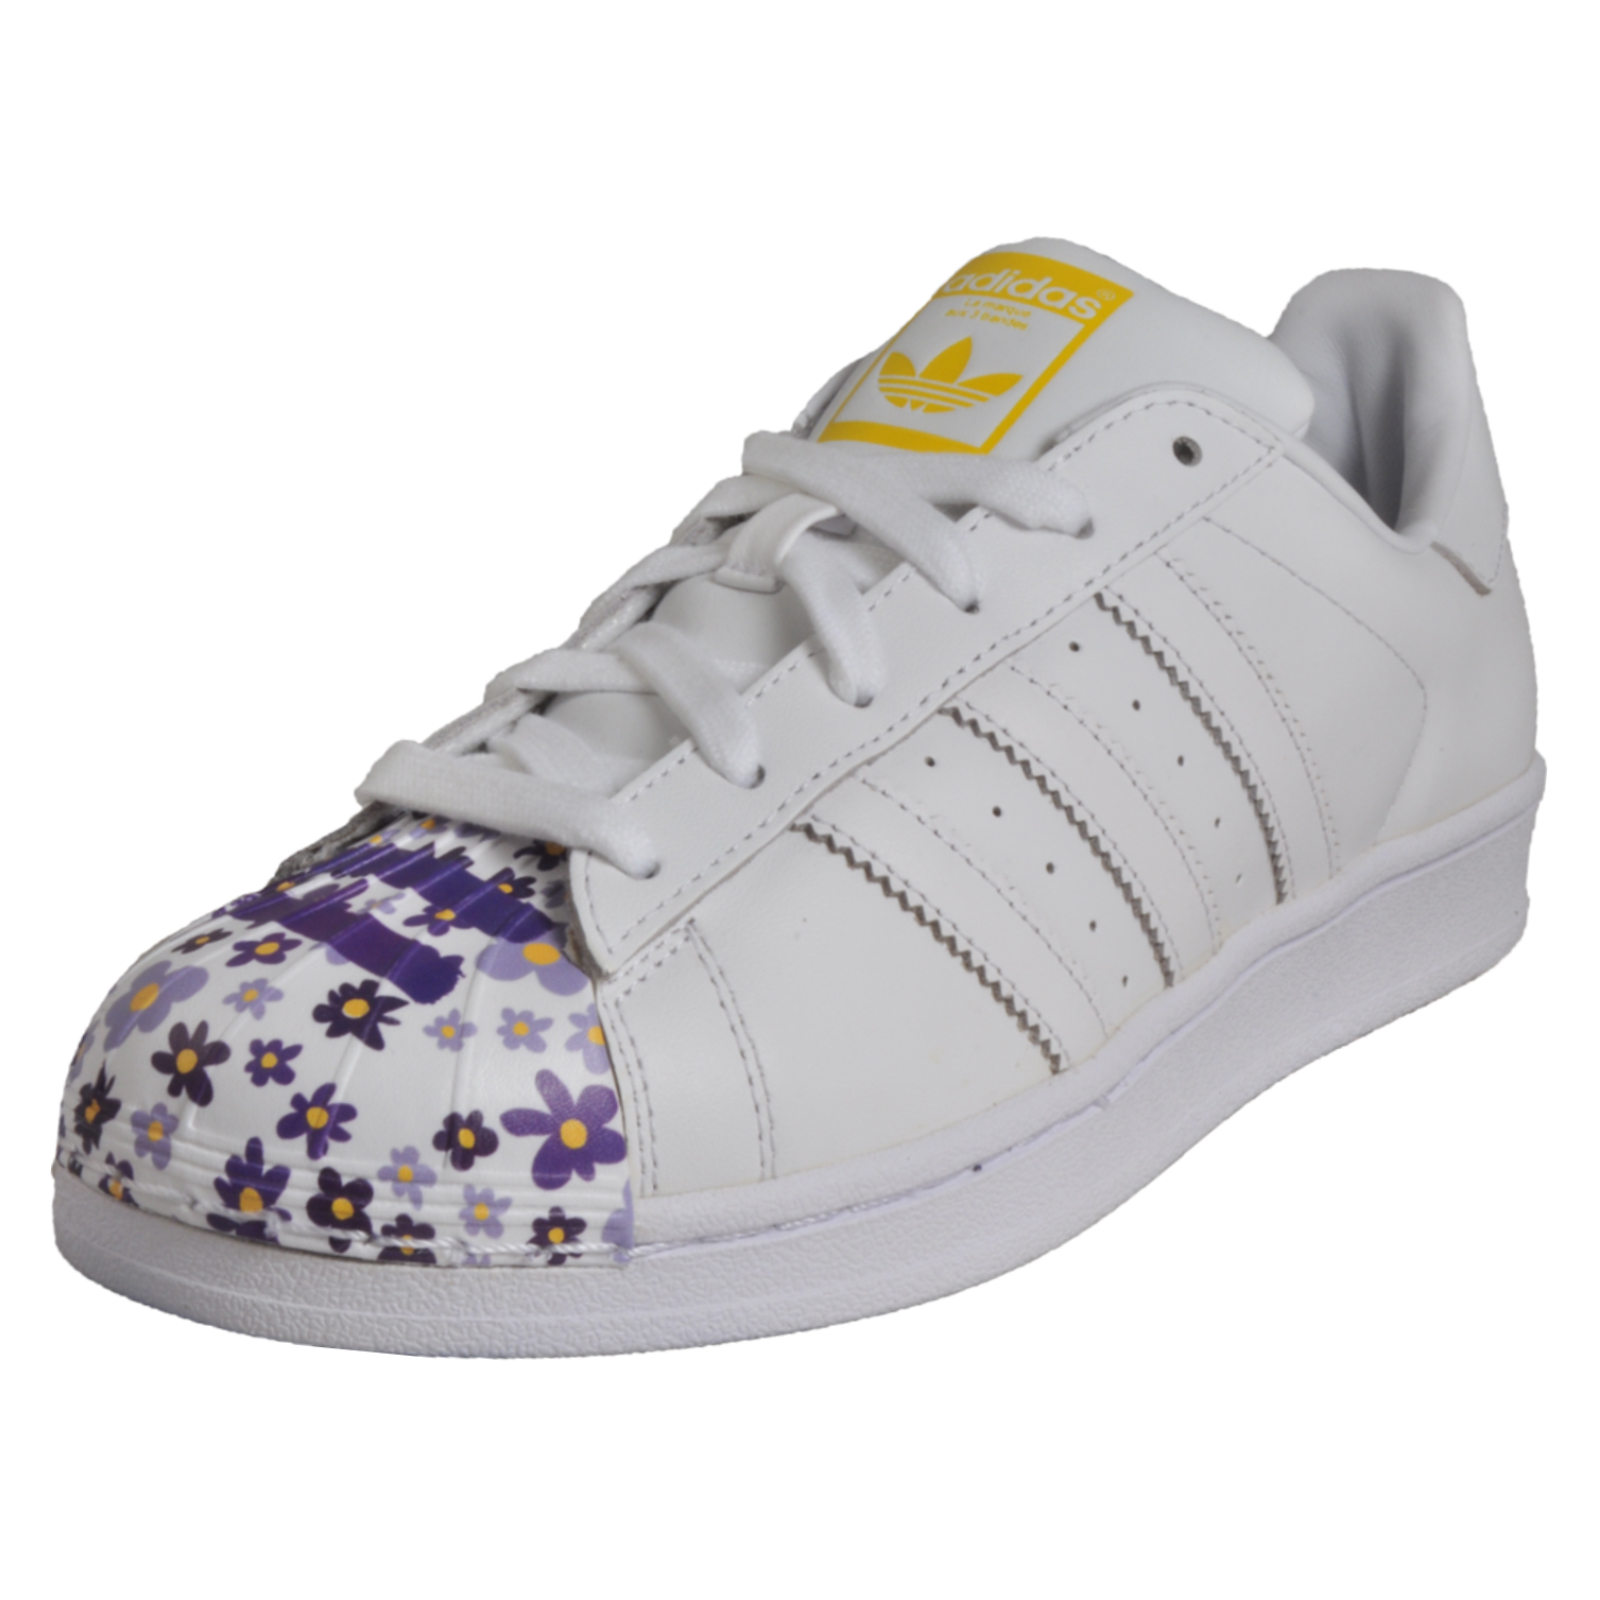 brand new 4341d 1a812 Adidas Originals Superstar Pharrell Williams Mens Leather Retro Trainers  White